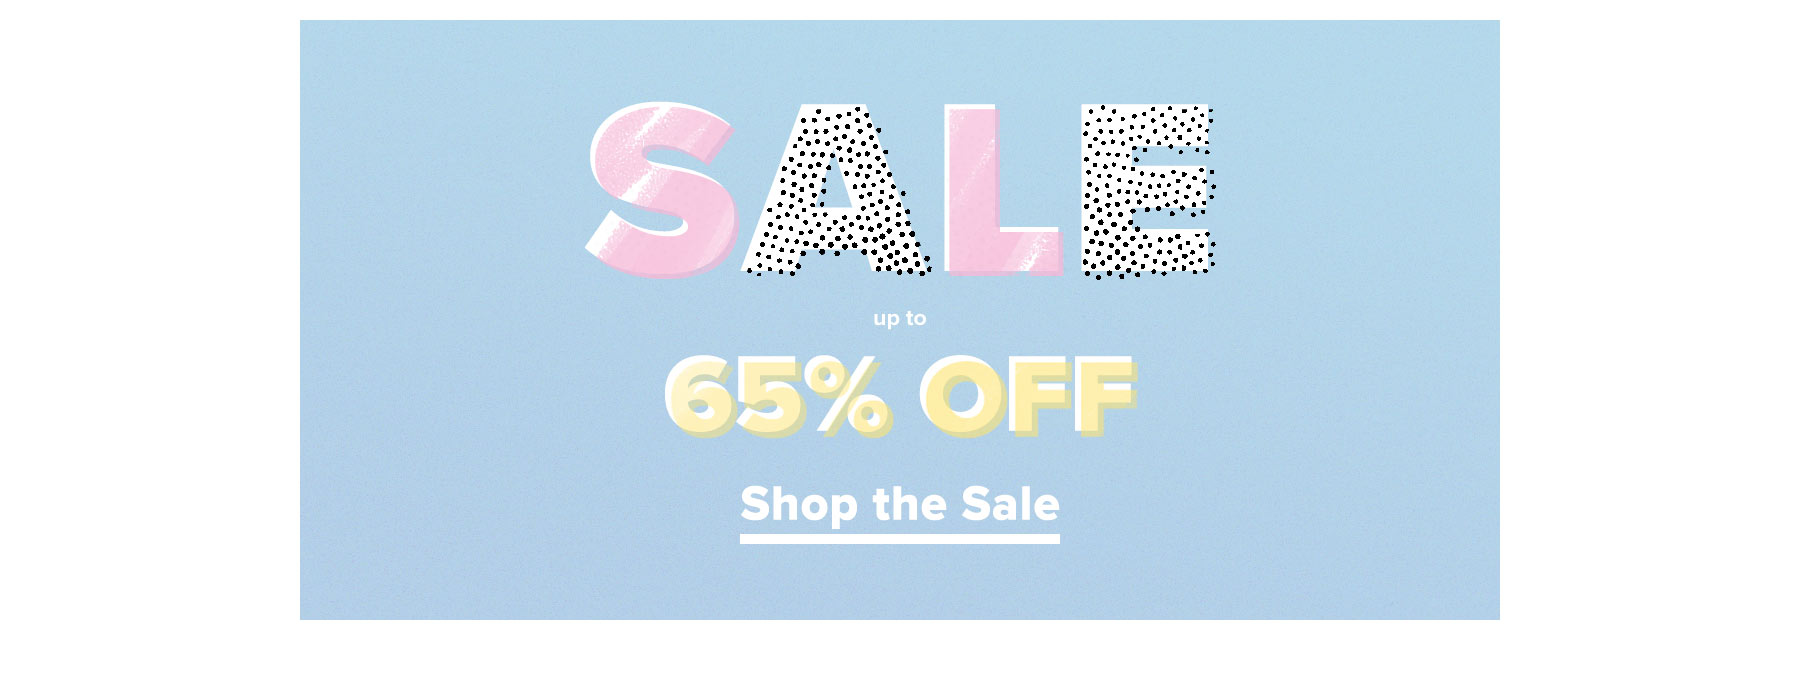 SALE. Up to 65% off. Shop the sale.